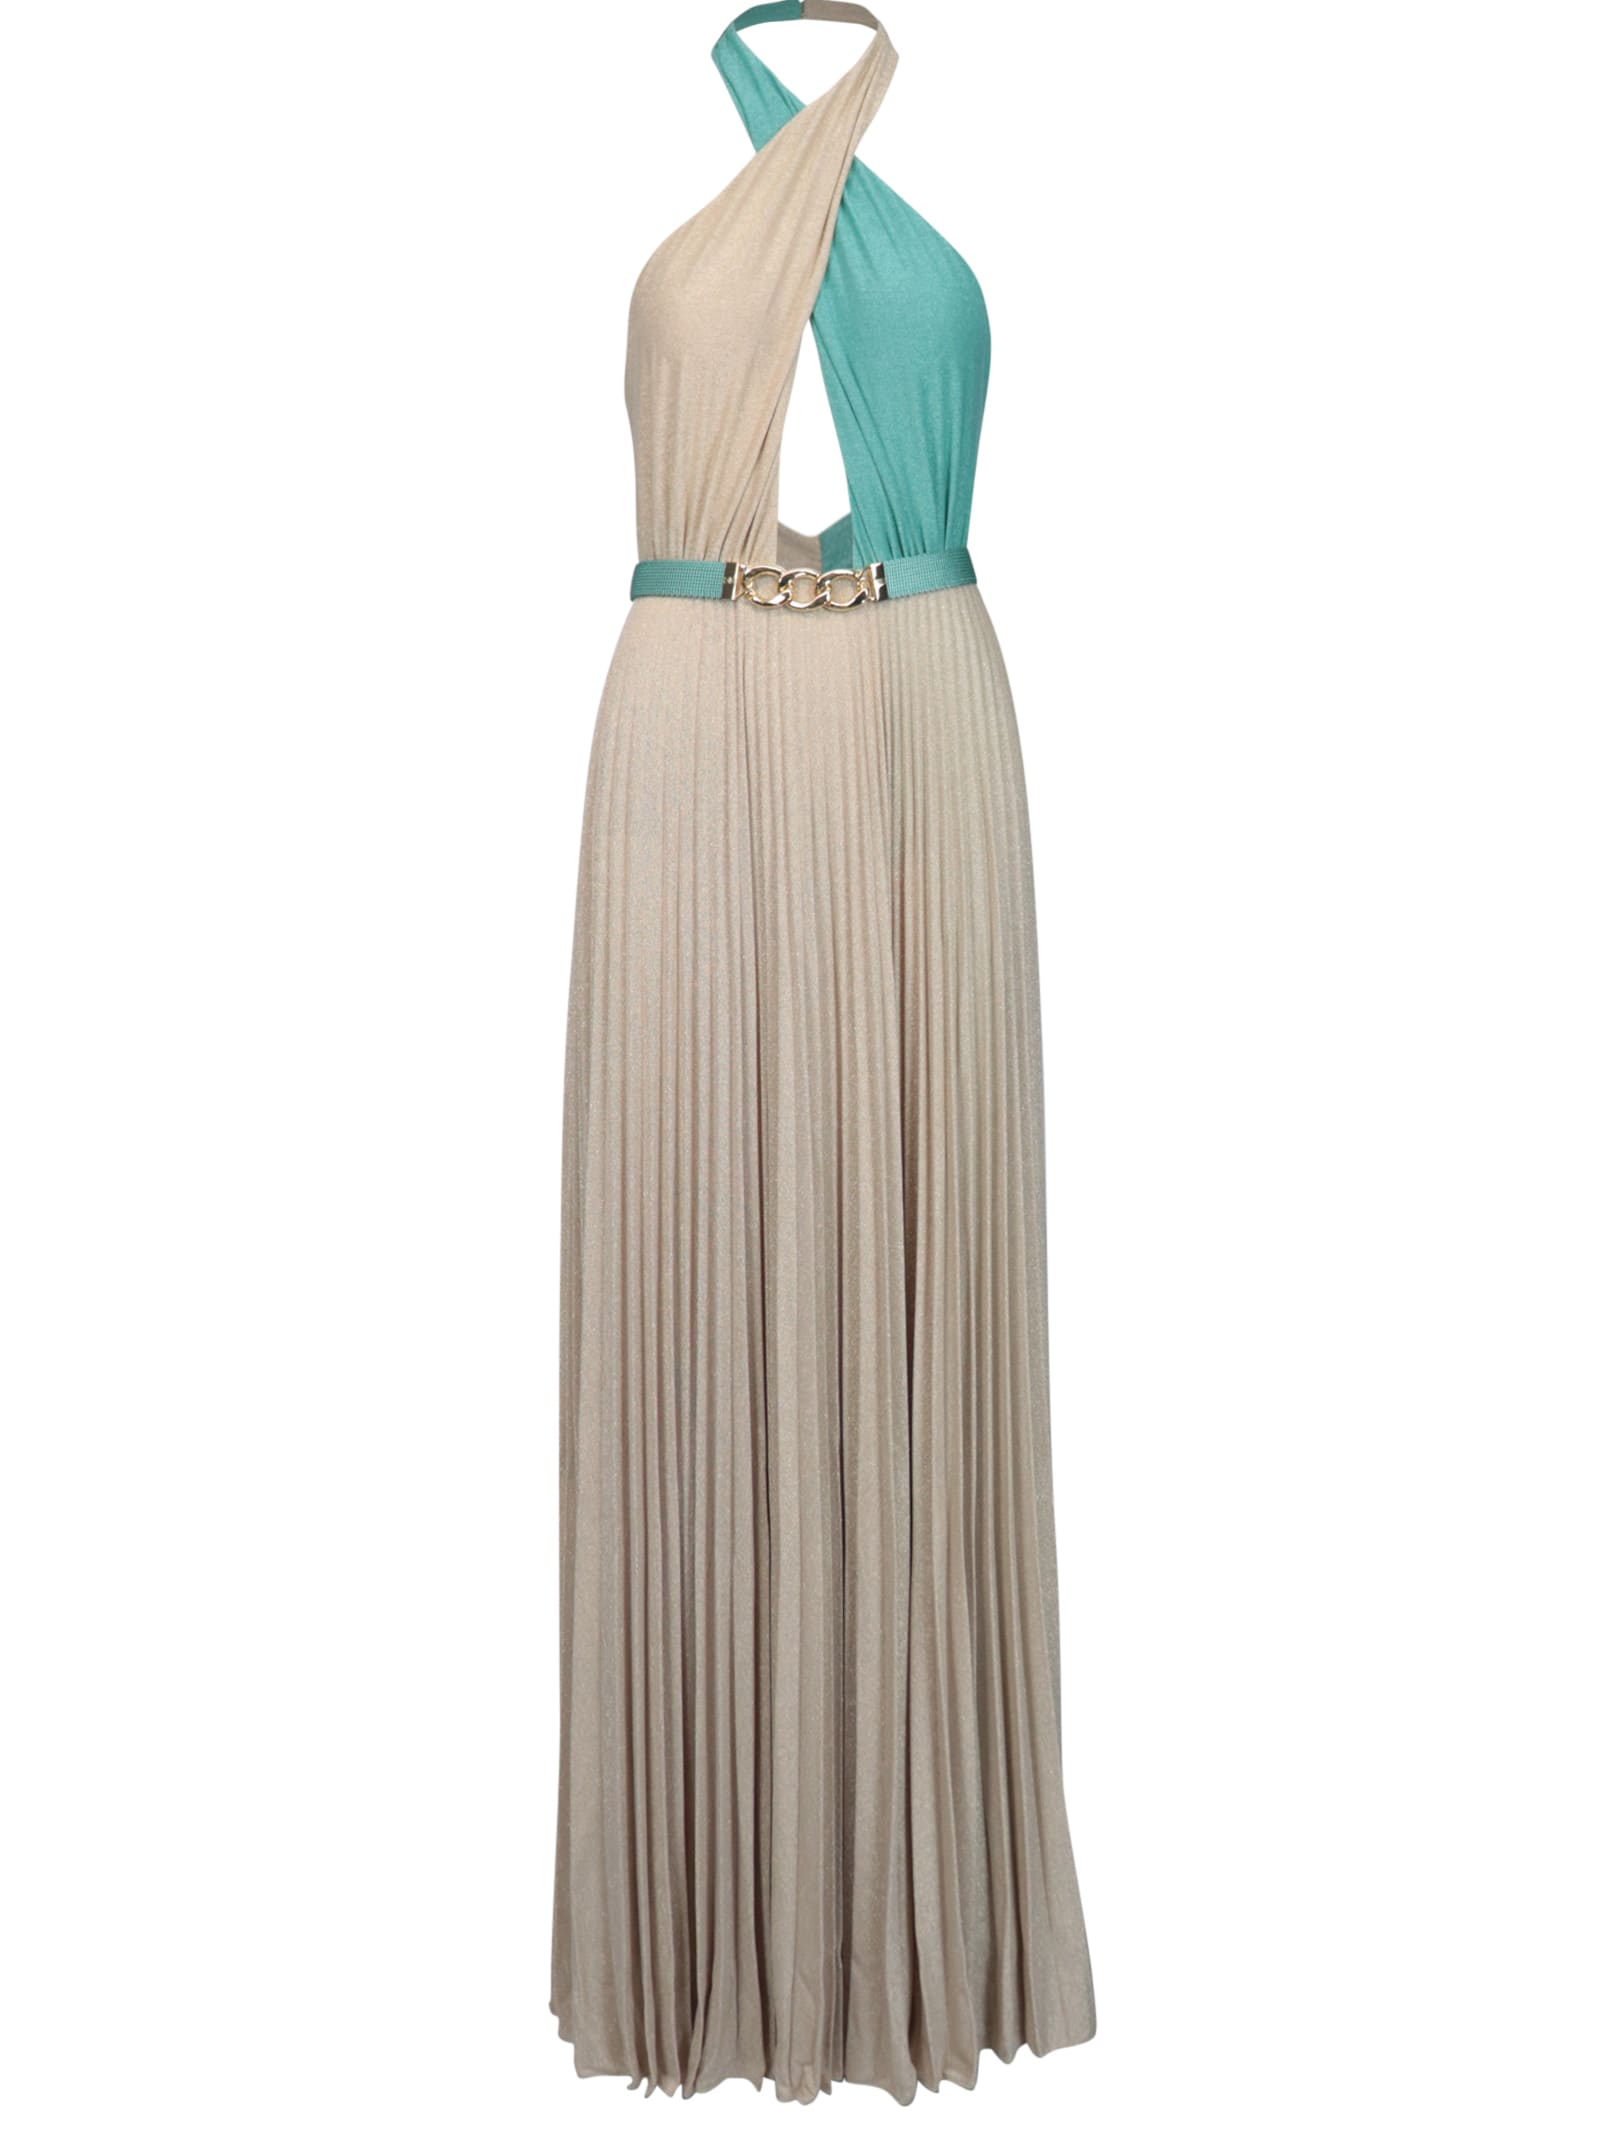 Buy Elisabetta Franchi Celyn B. Long Jersey Bicolor Dress online, shop Elisabetta Franchi Celyn B. with free shipping